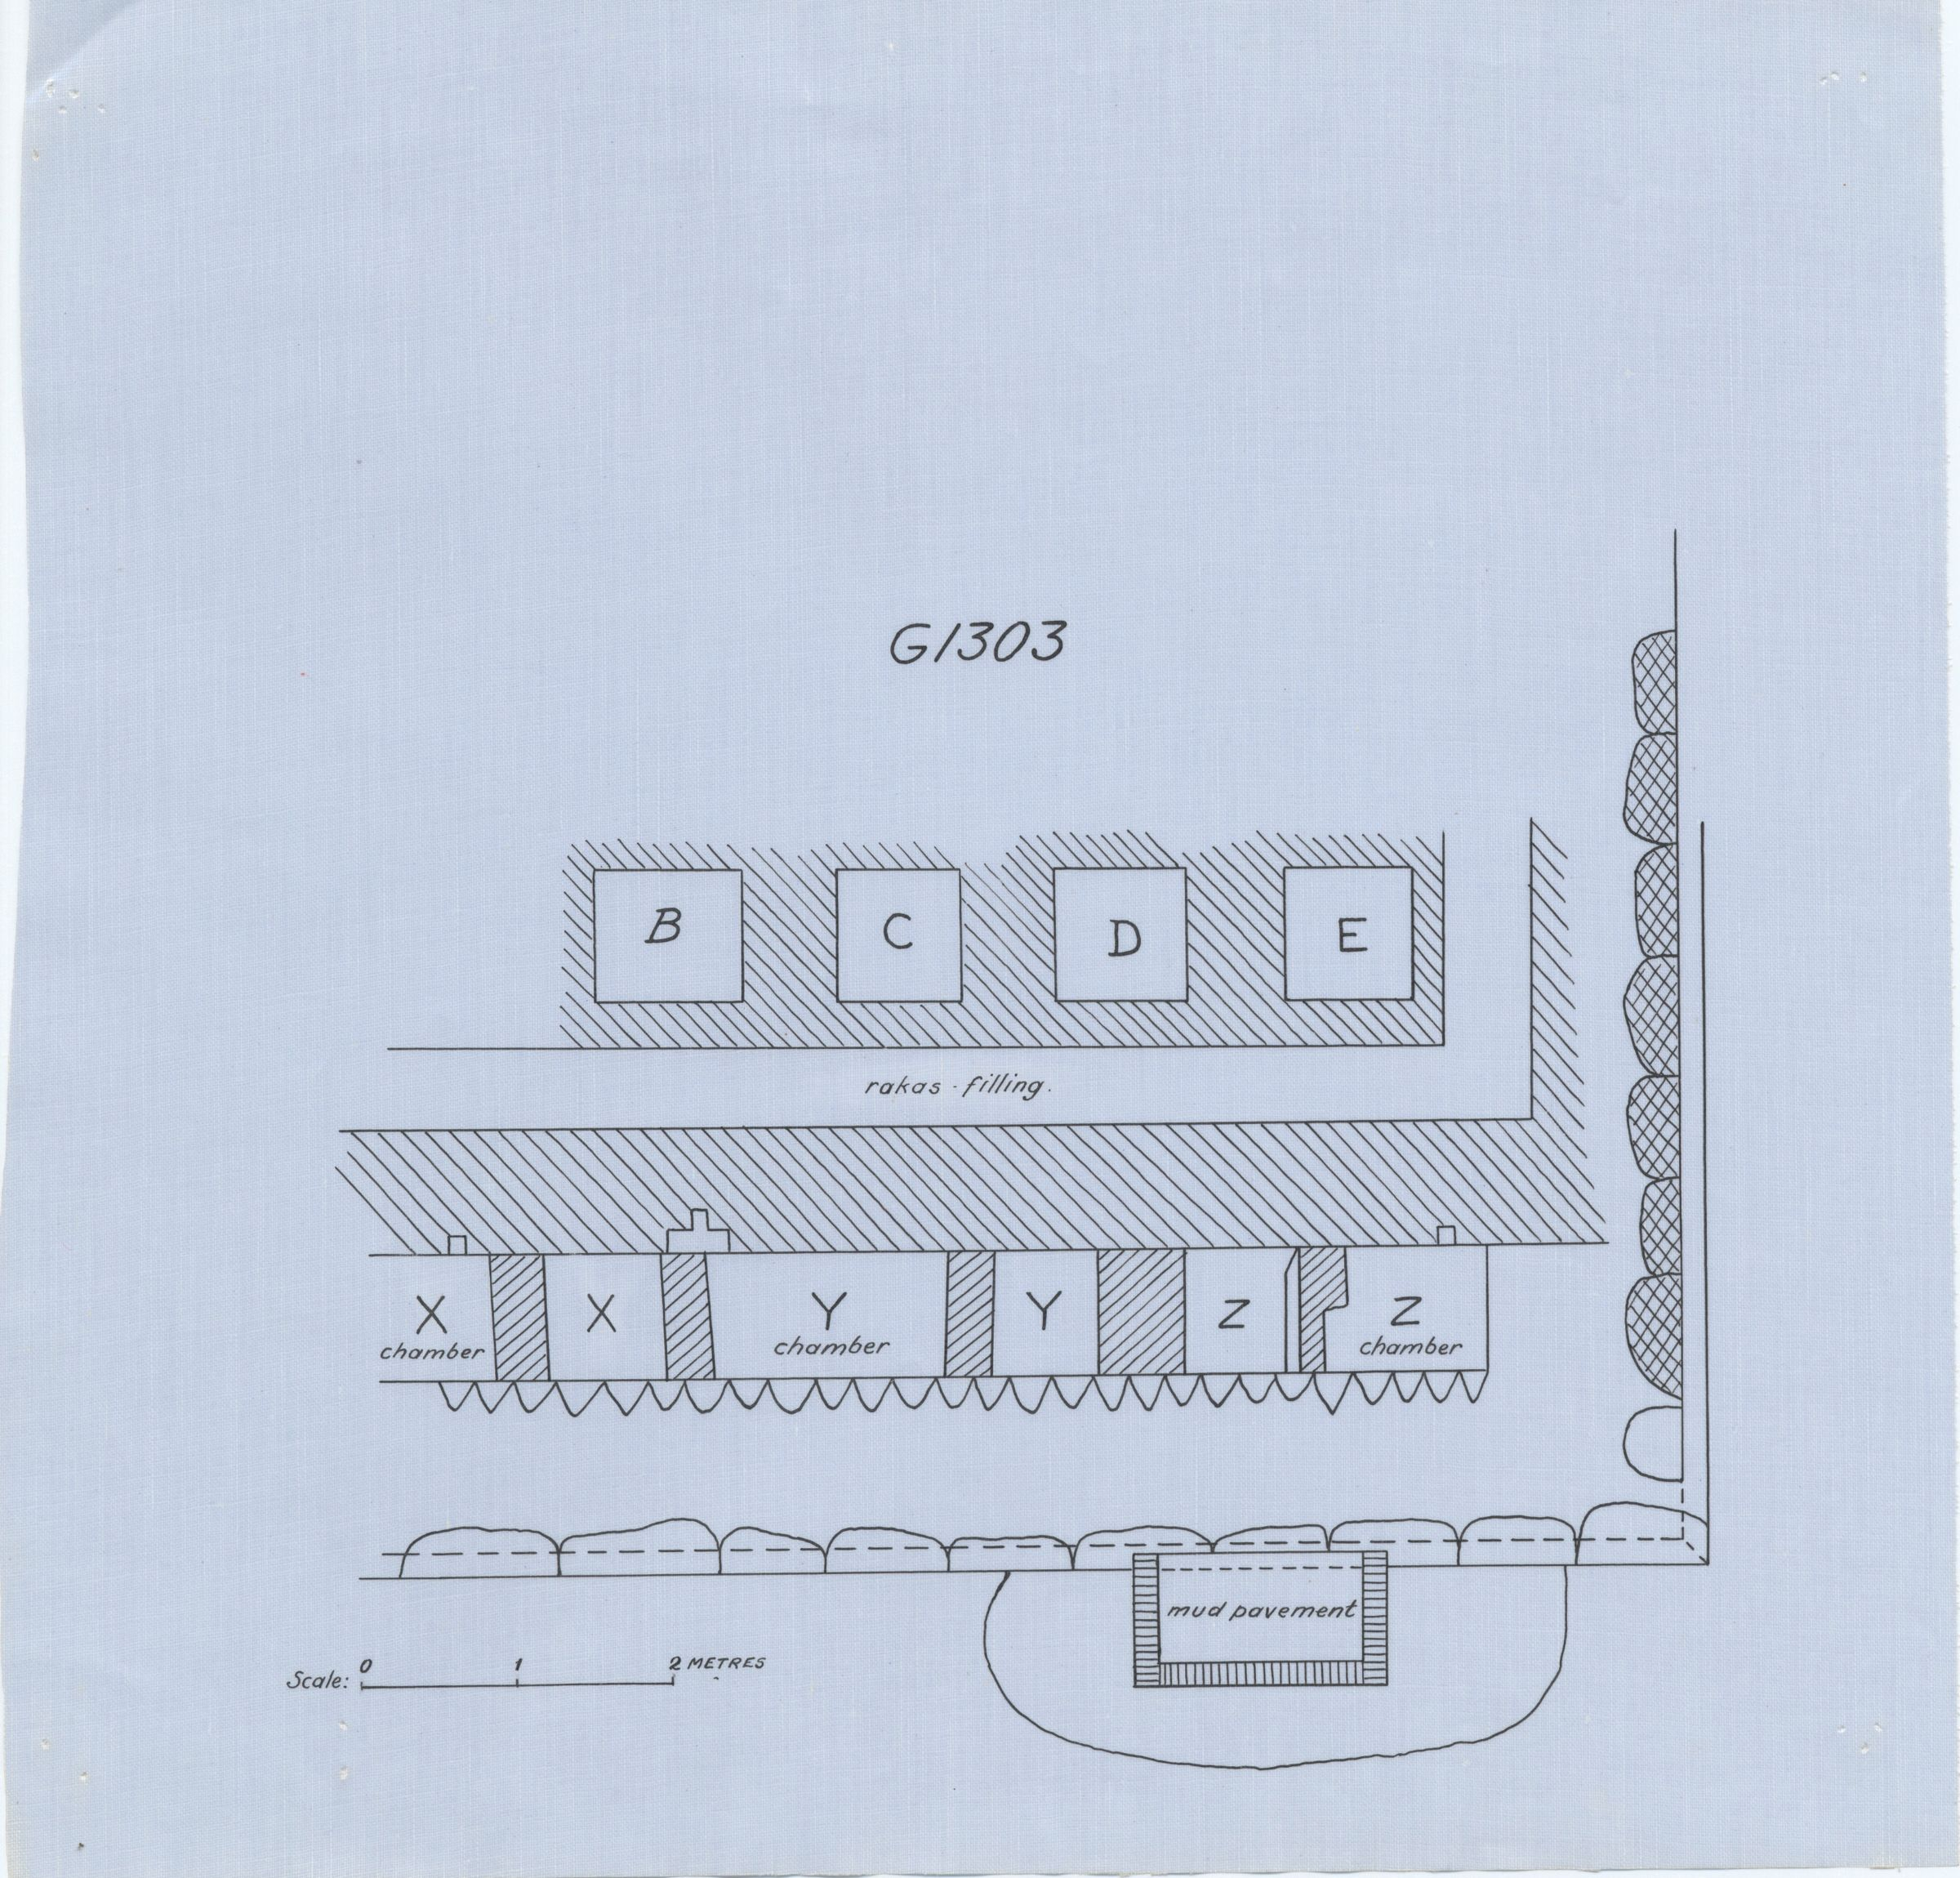 Maps and plans: G 1303, Plan (partial)